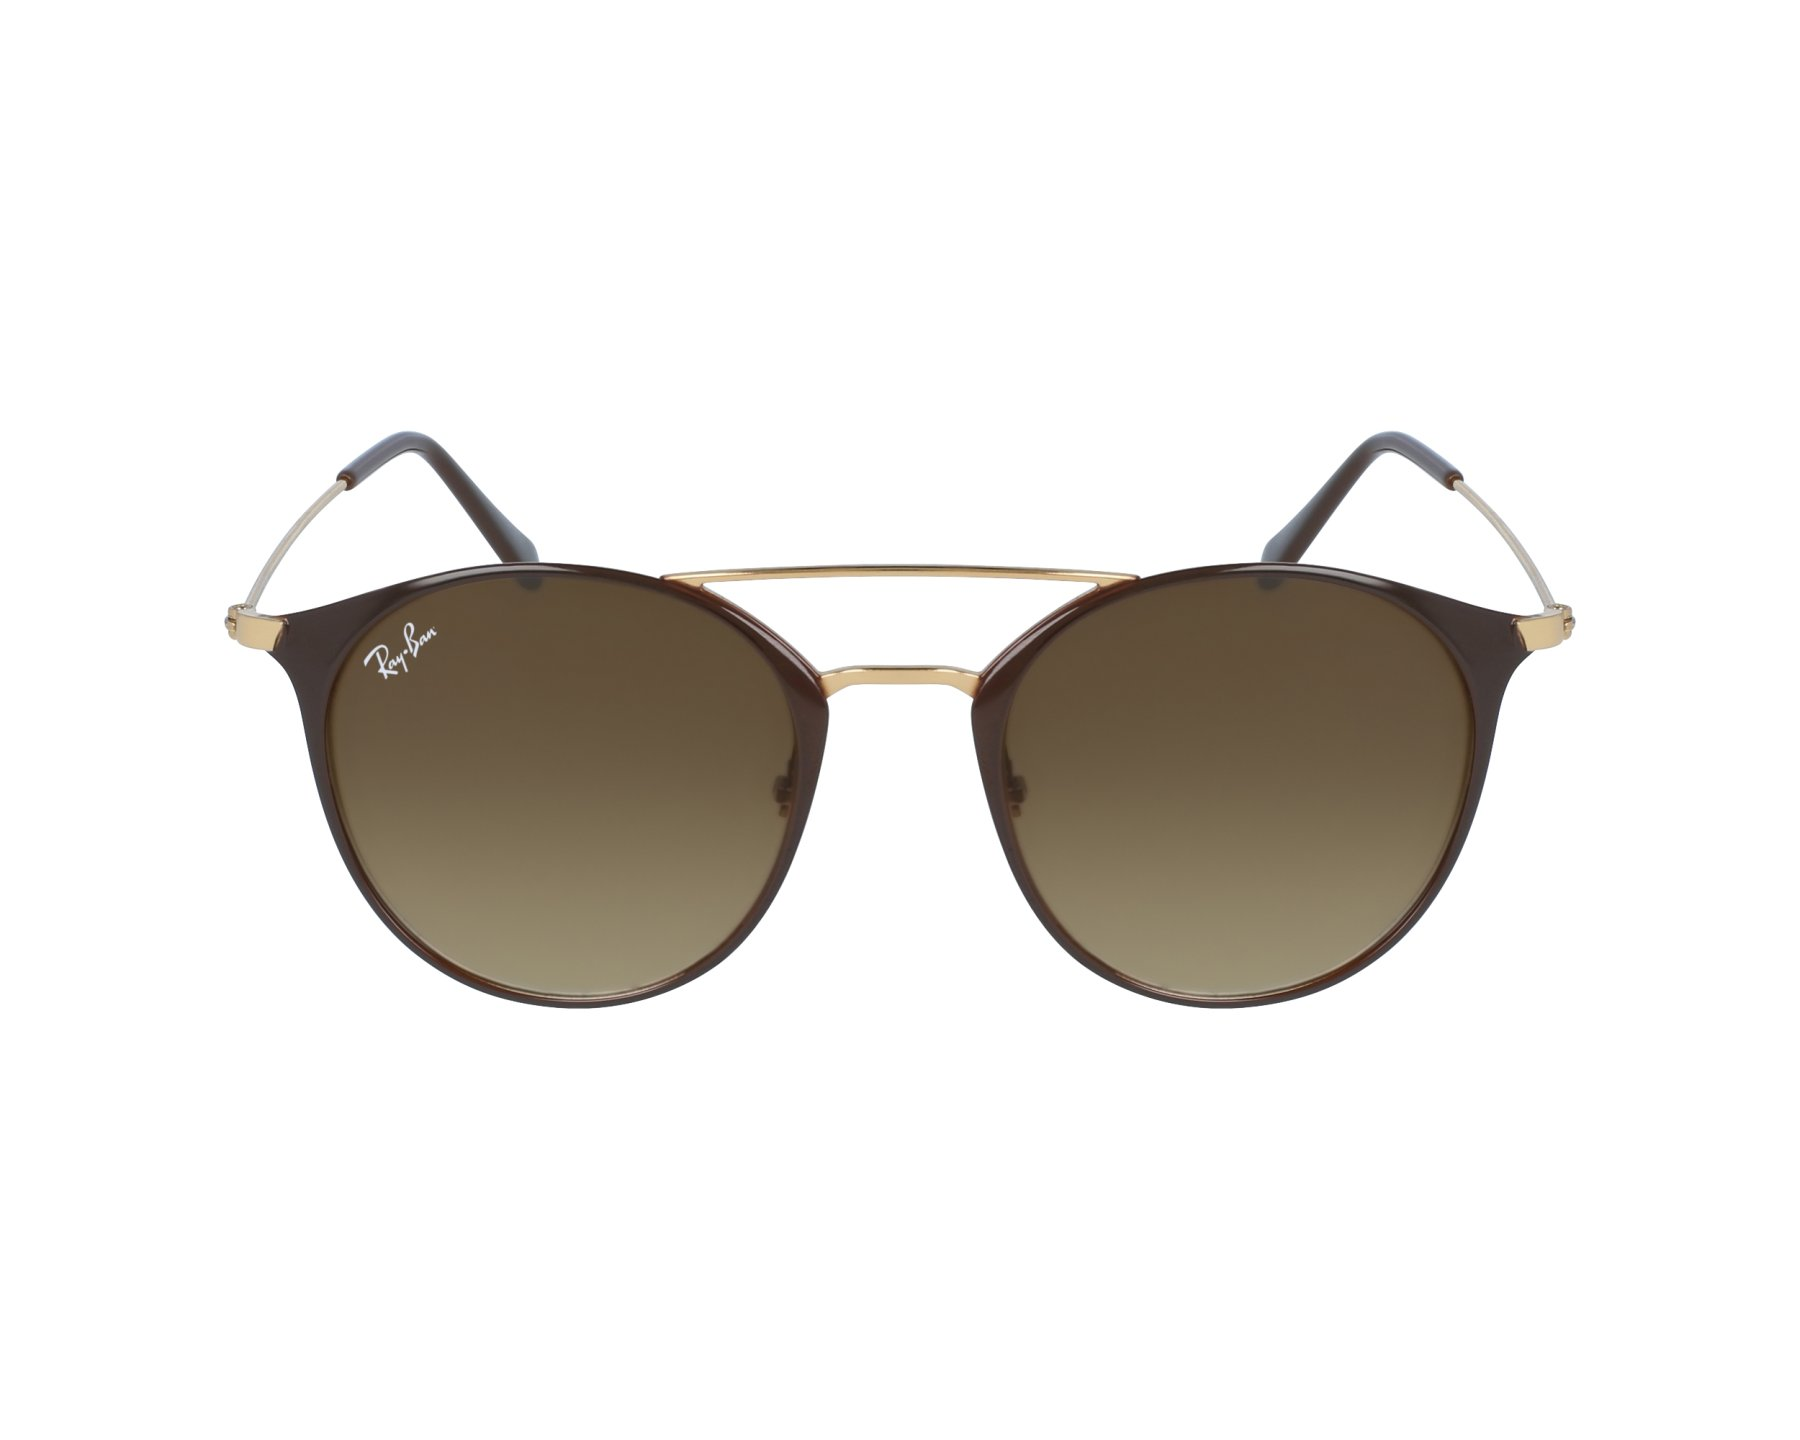 Ray ban sunglasses gradient - Top Gt Sunglasses Gt Ray Ban Gt Ray Ban Rb3546 9009 85